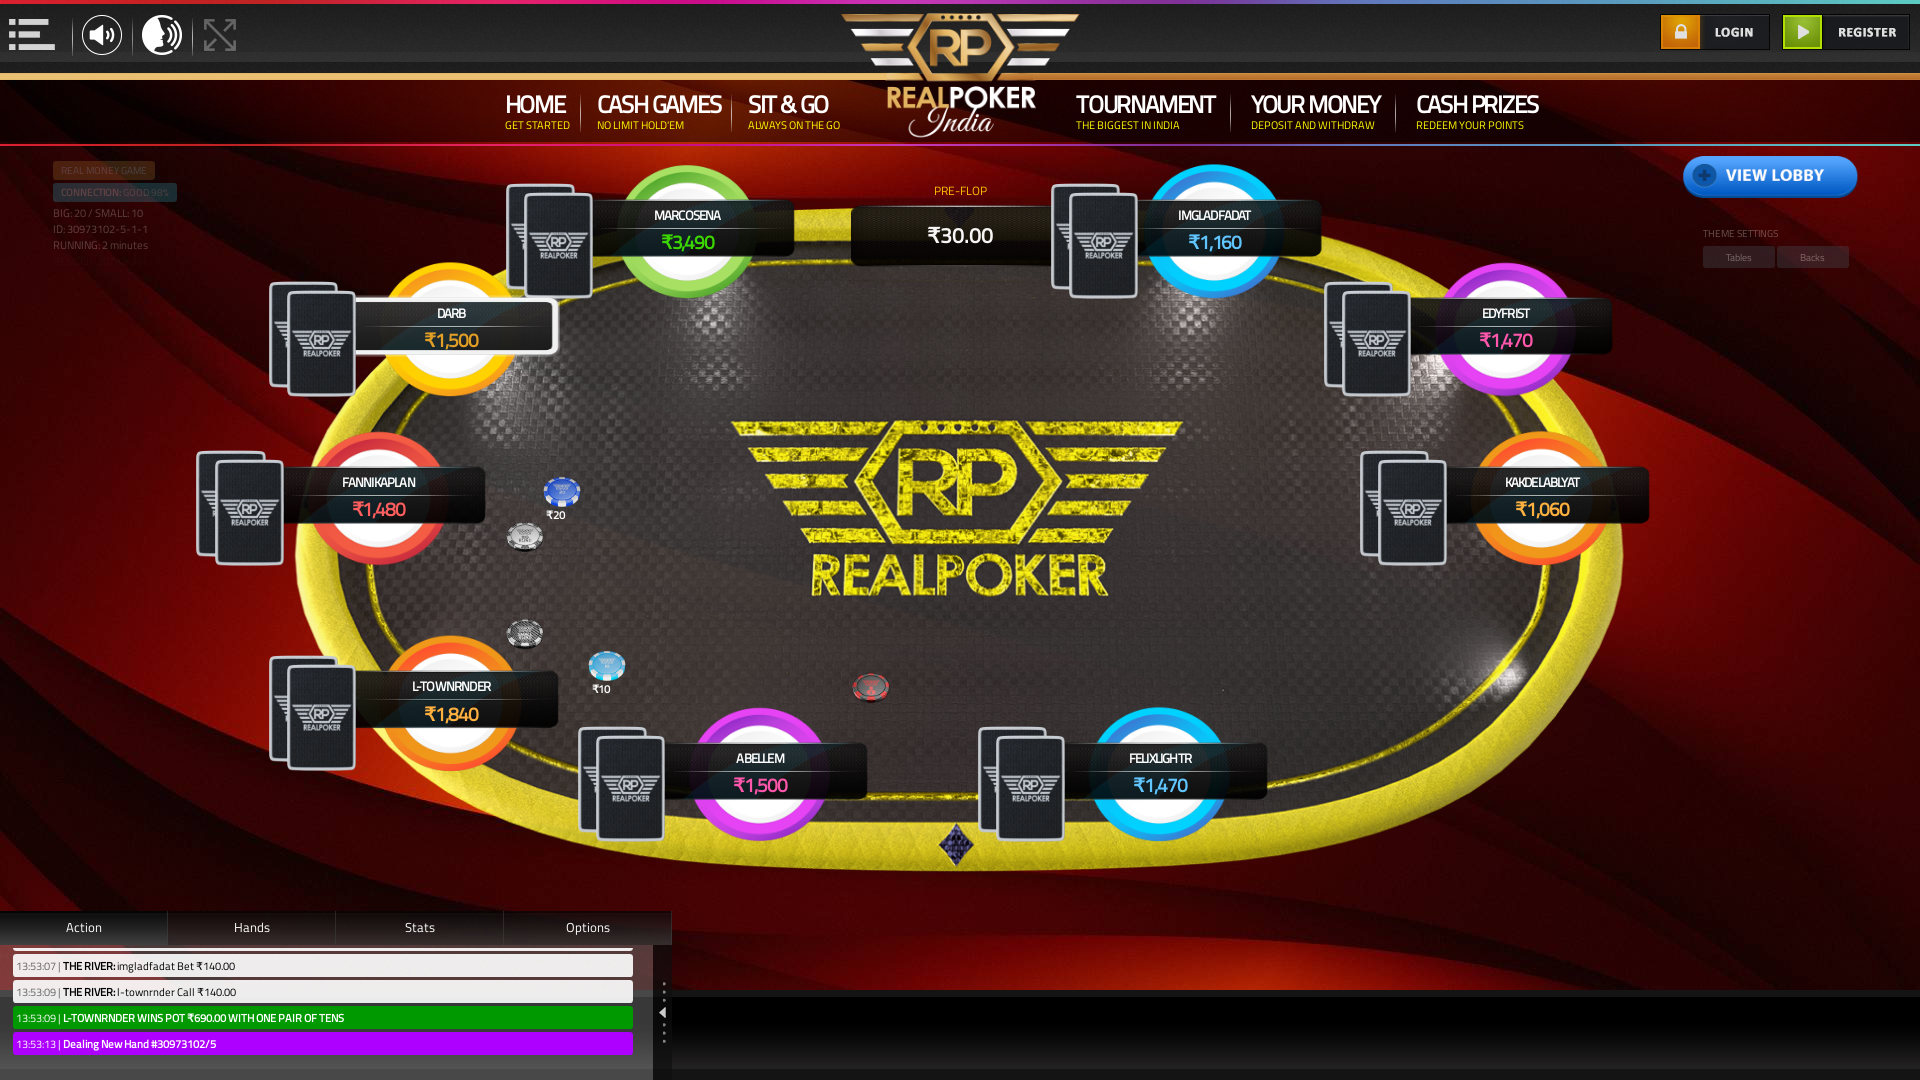 Real poker 10 player table in the 2nd minute